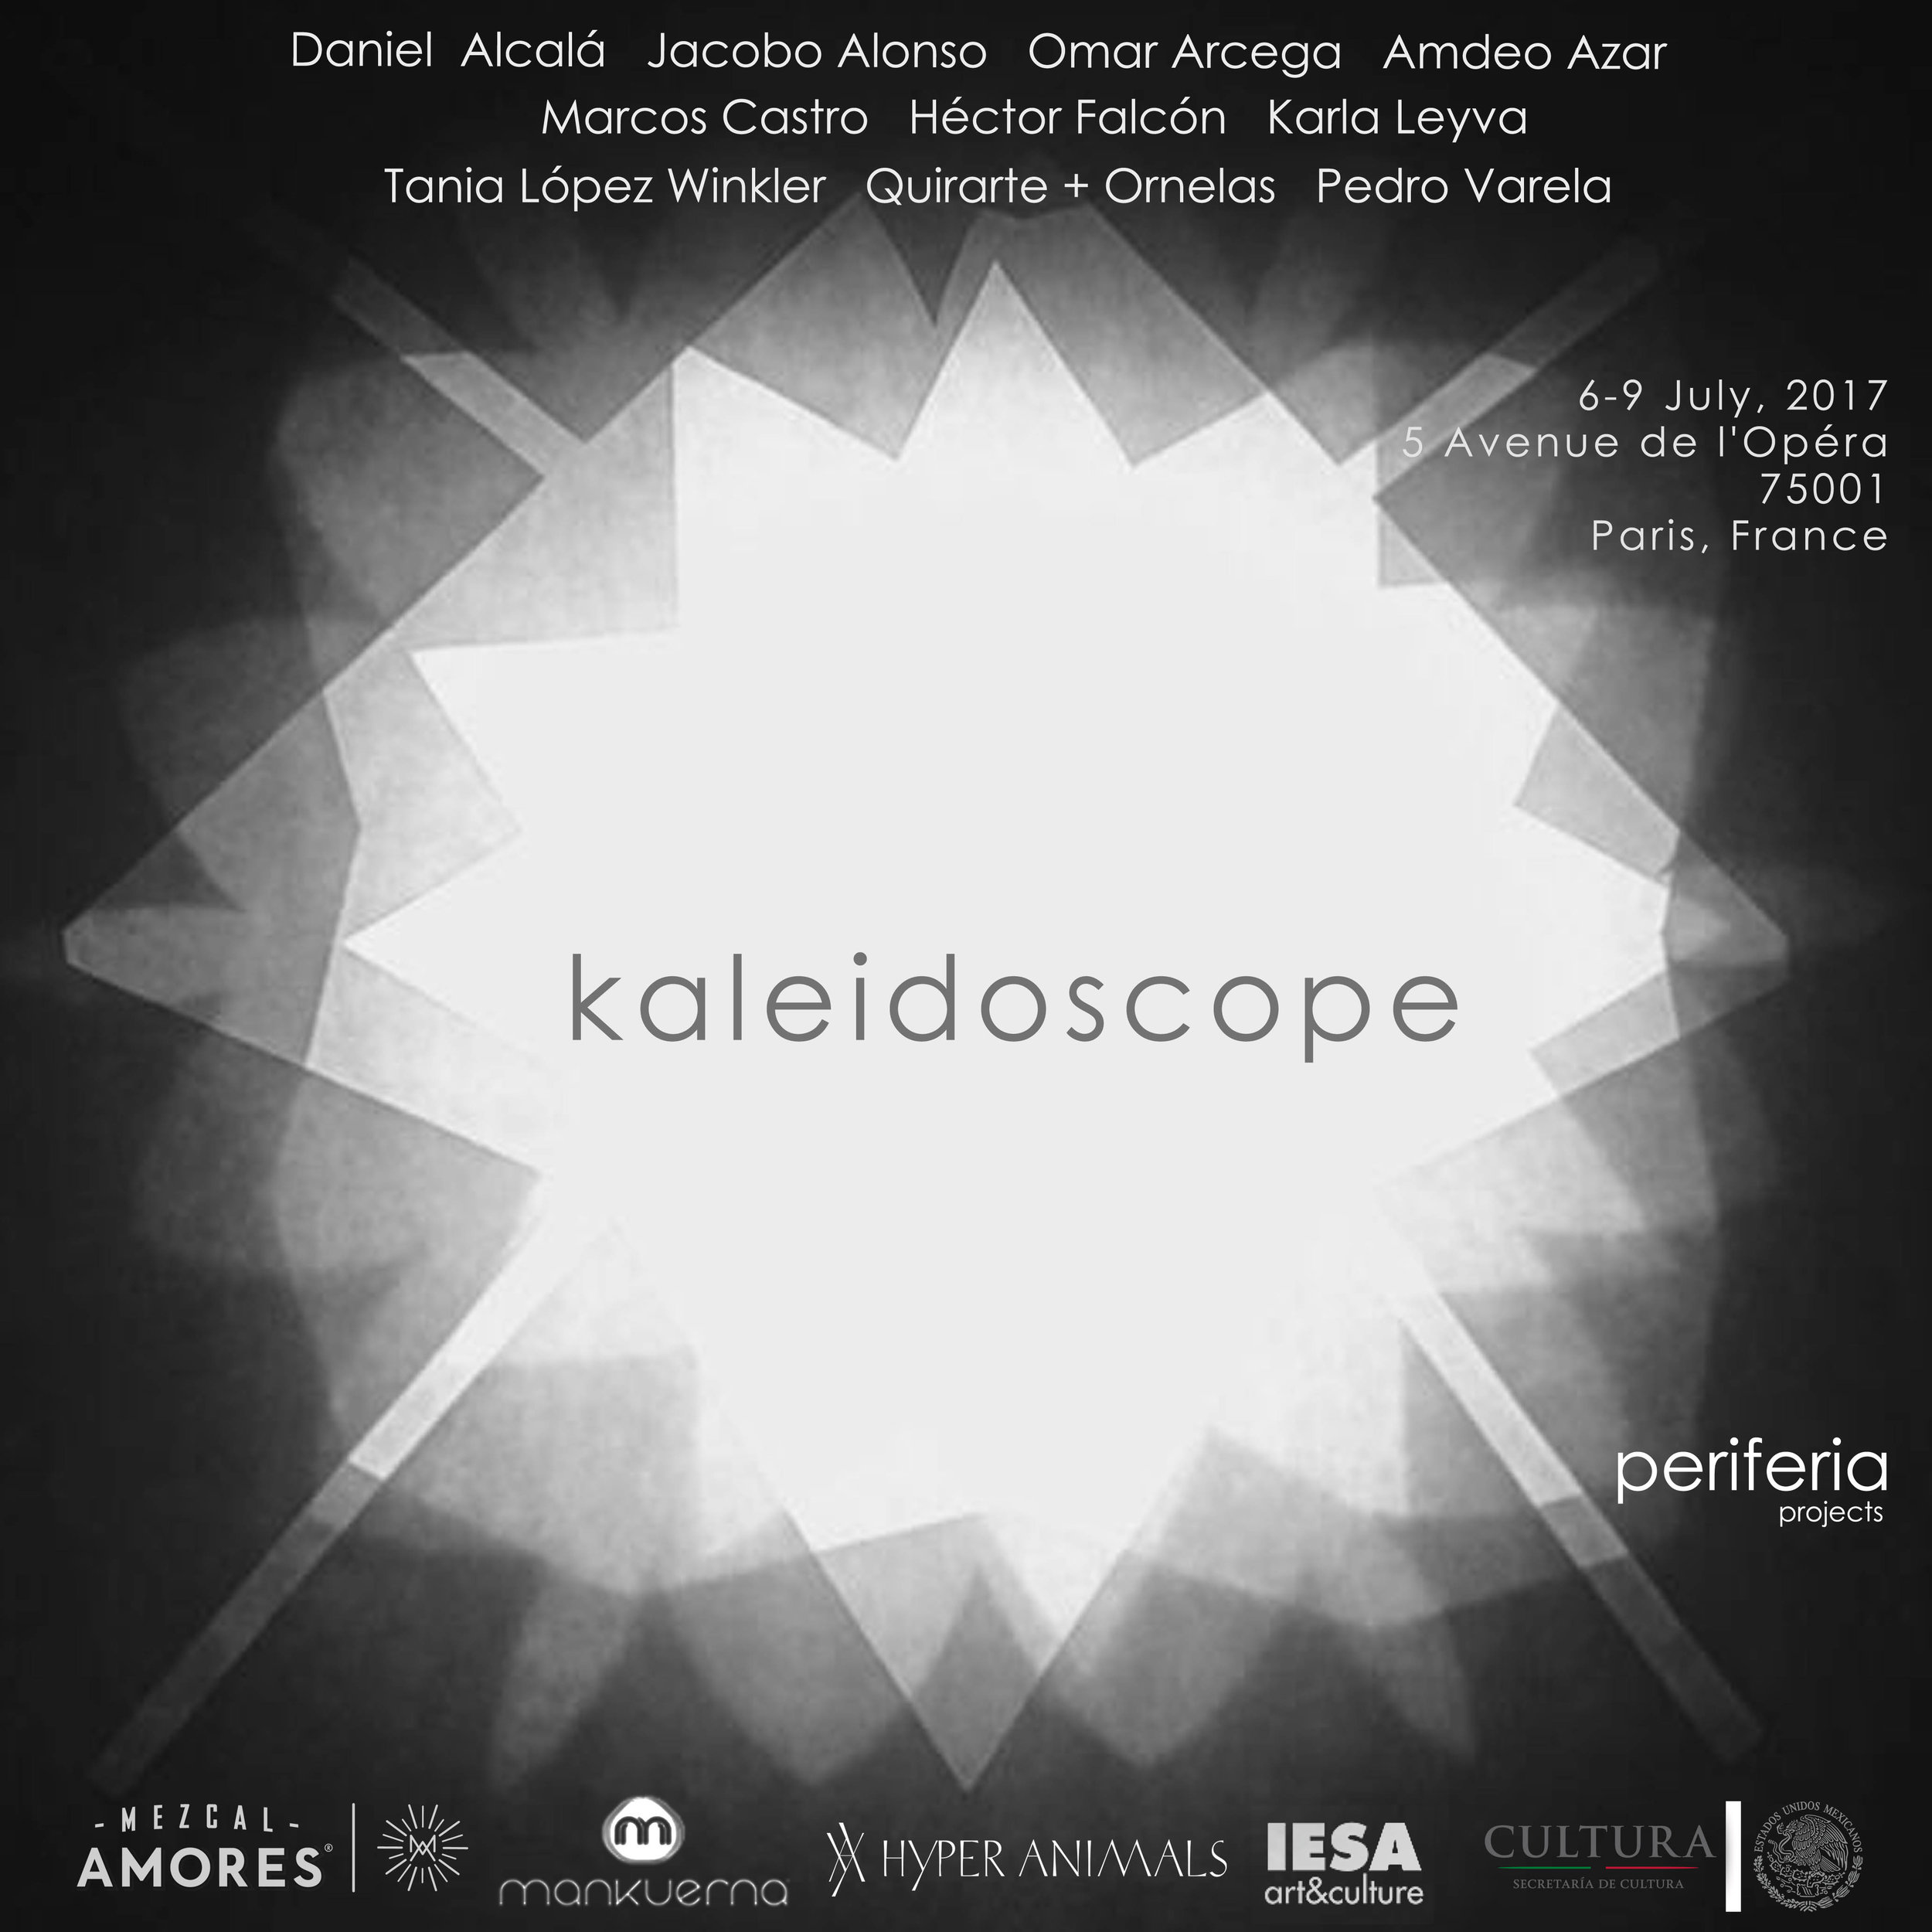 - KALEIDOSOPE6 - 9 July 2017. Paris, France.A group show that brings together works by ten international artists from Latin America with a selection of works on paper that are part of a project with exhibitions in both London and Budapest. KALEIDOSCOPE lays out Latin American artists' standpoints and aims to make them visible to the spectator not through constructed stereotype of otherness, but instead proposes an immersion into these artists' own perspectives with universal language influenced by their own contexts.